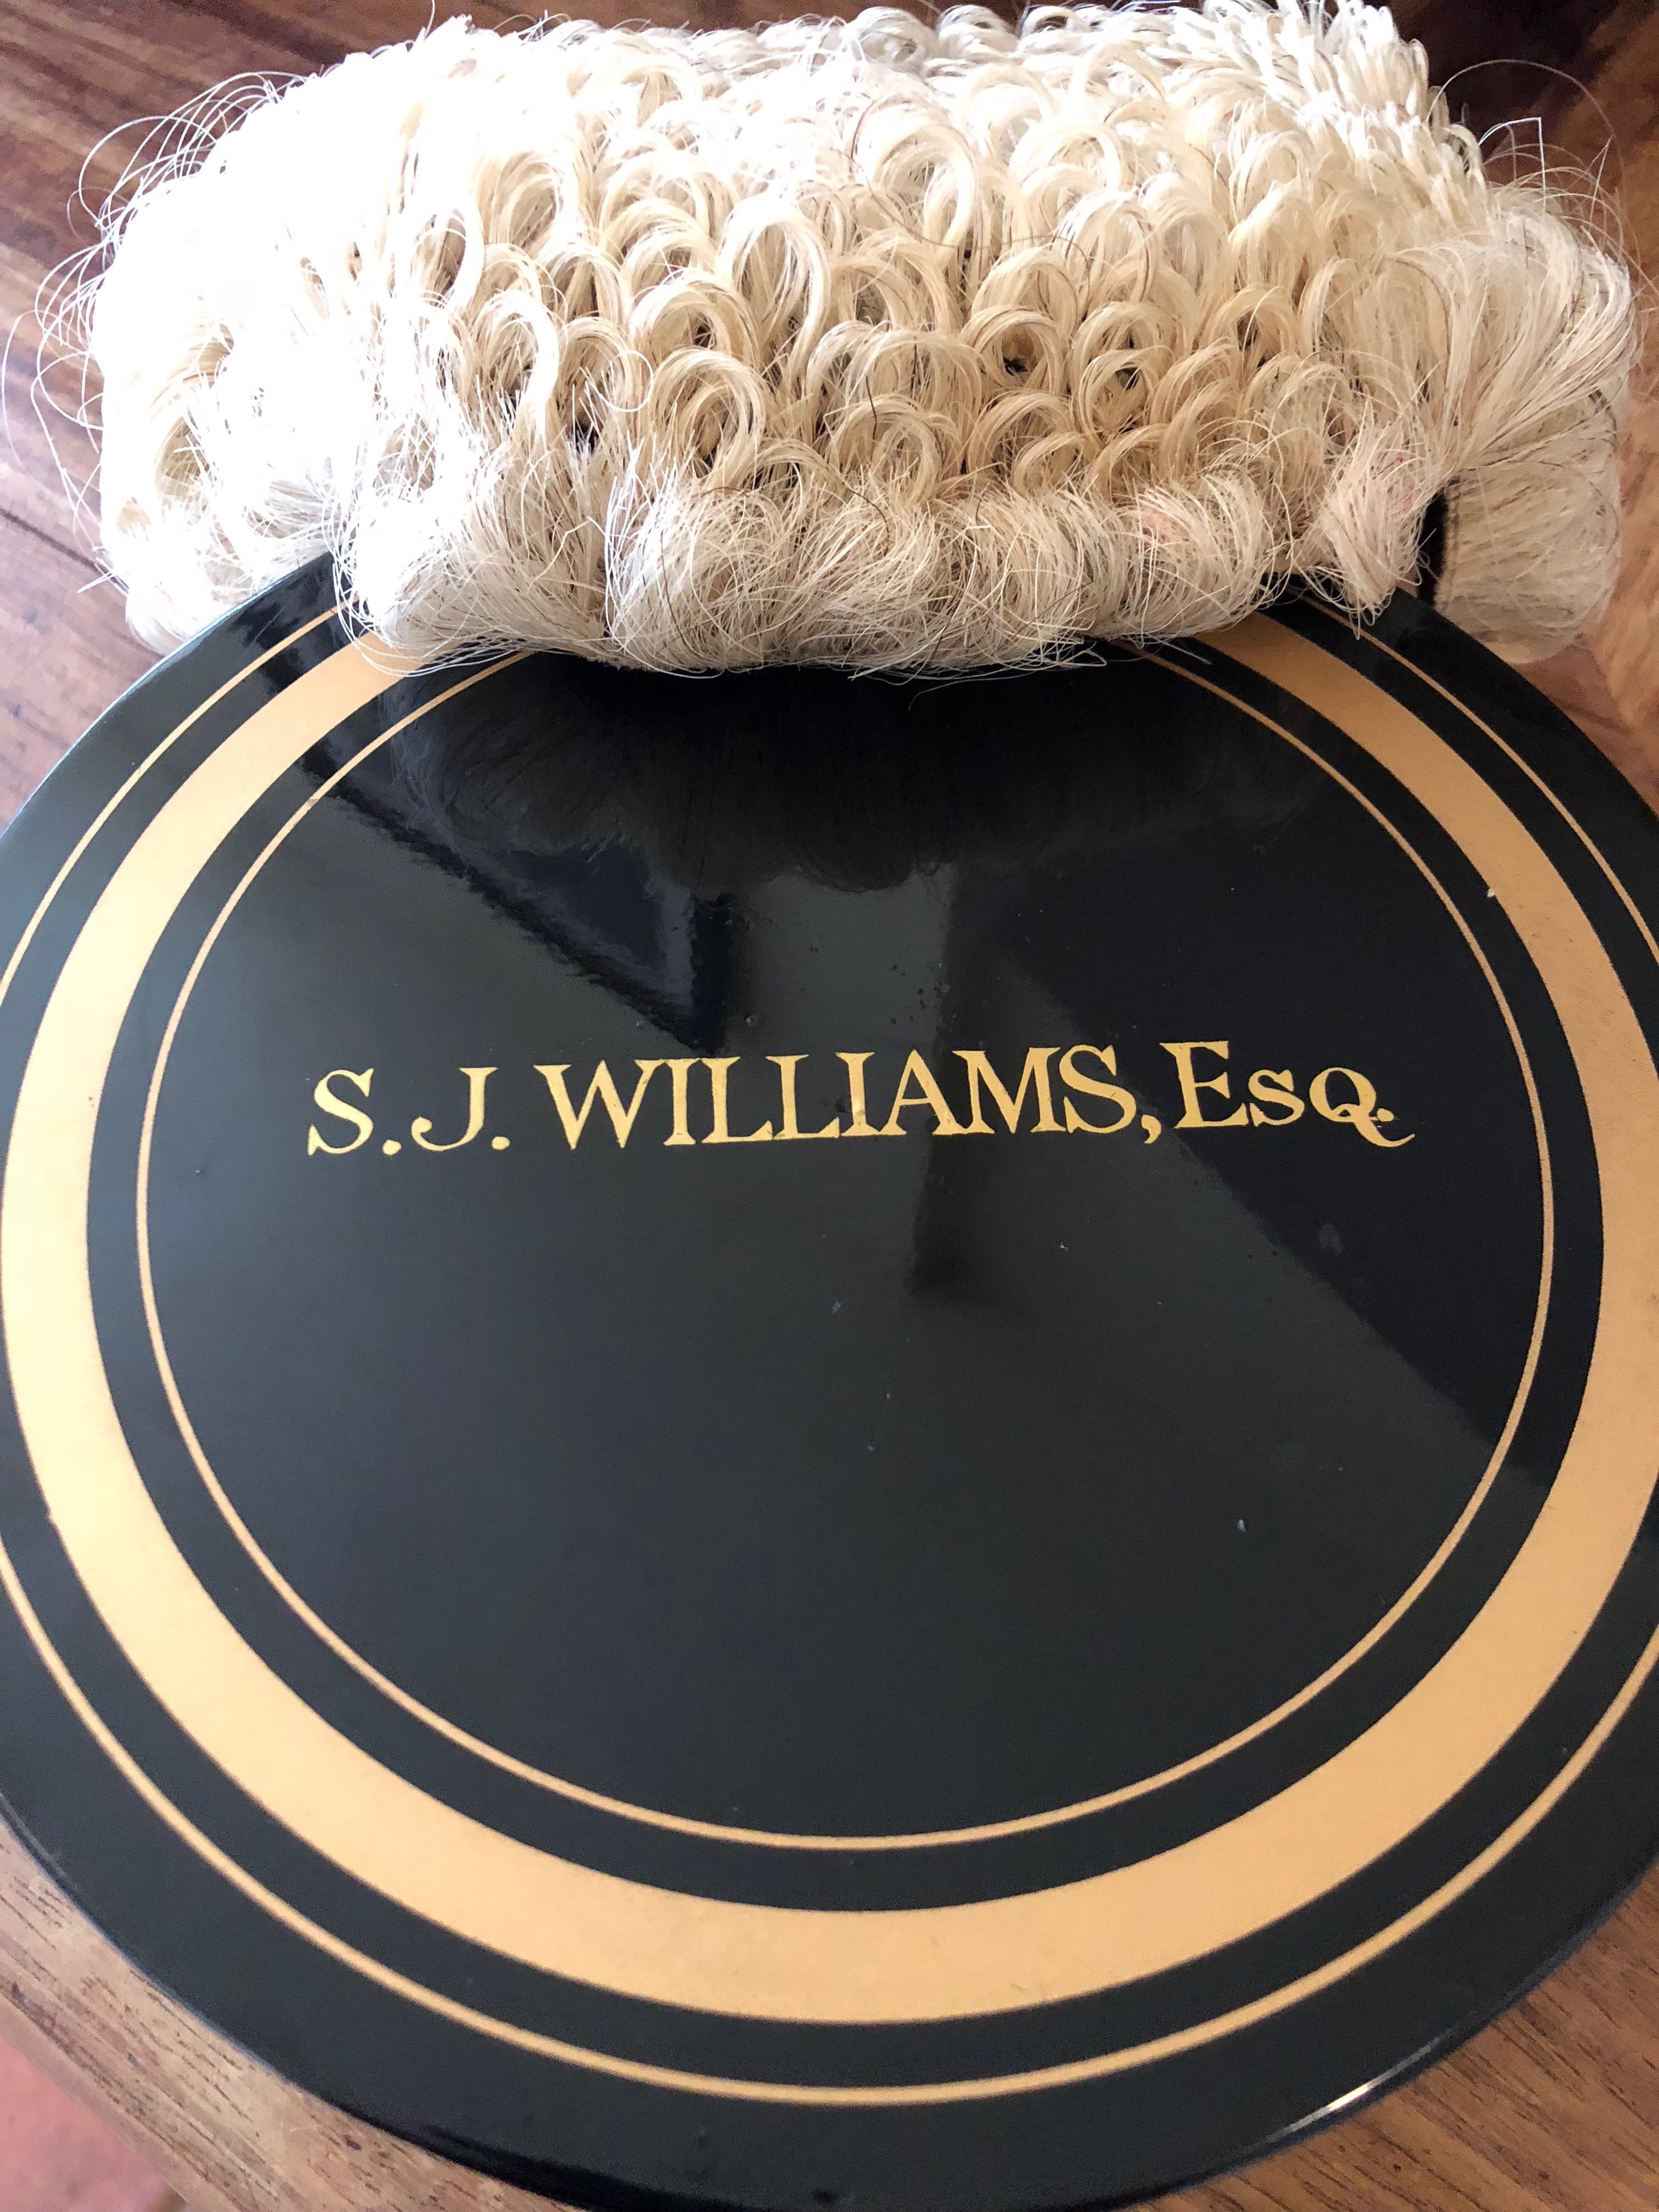 S J Williams, Esq - Williams Solicitors